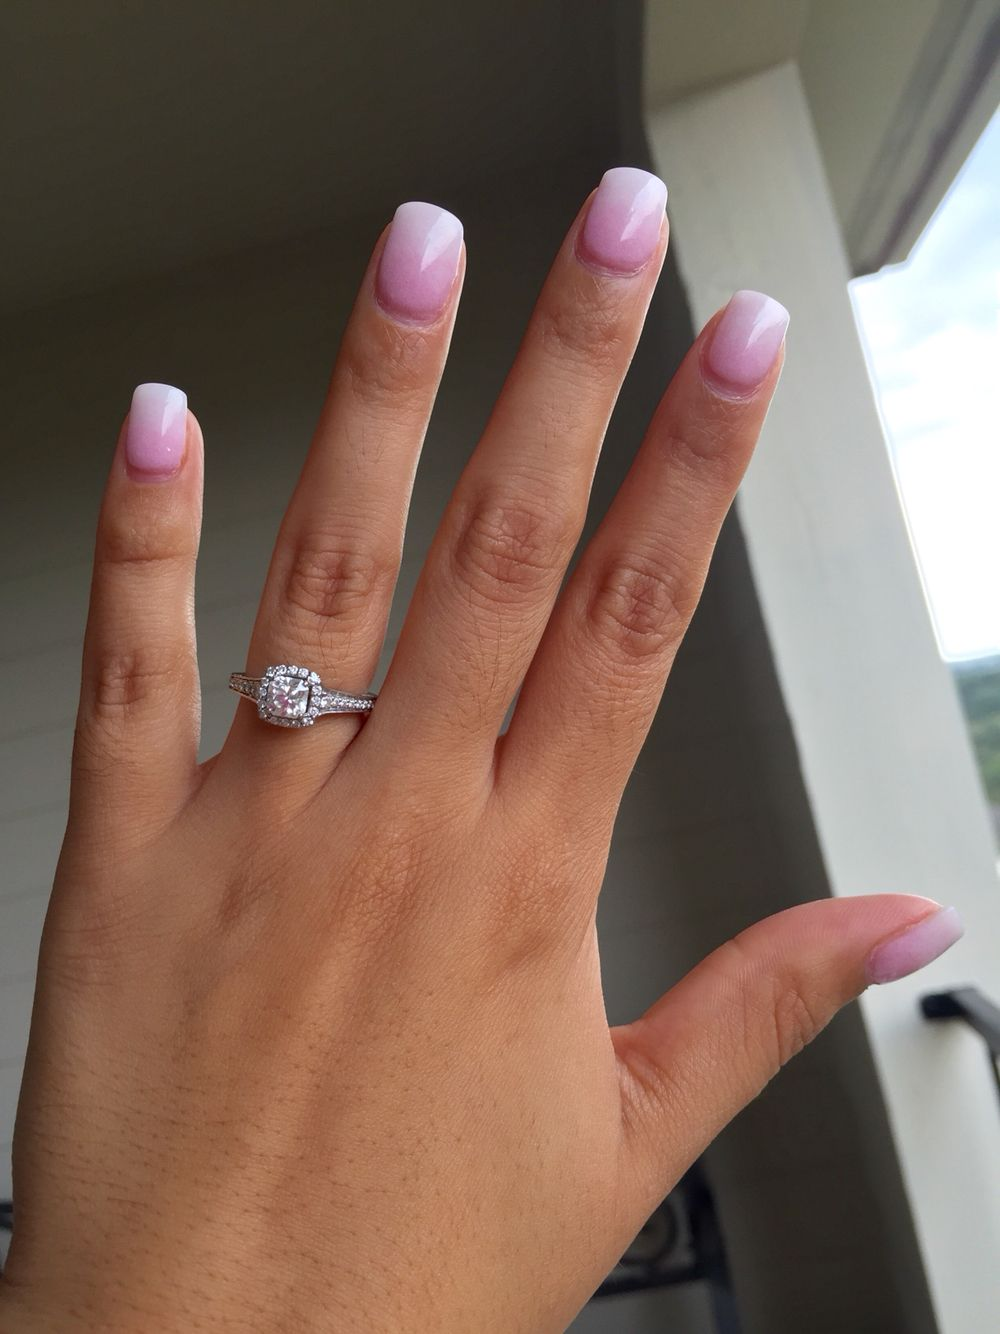 sns nails pink and white ombre | nails | pinterest | sns nails